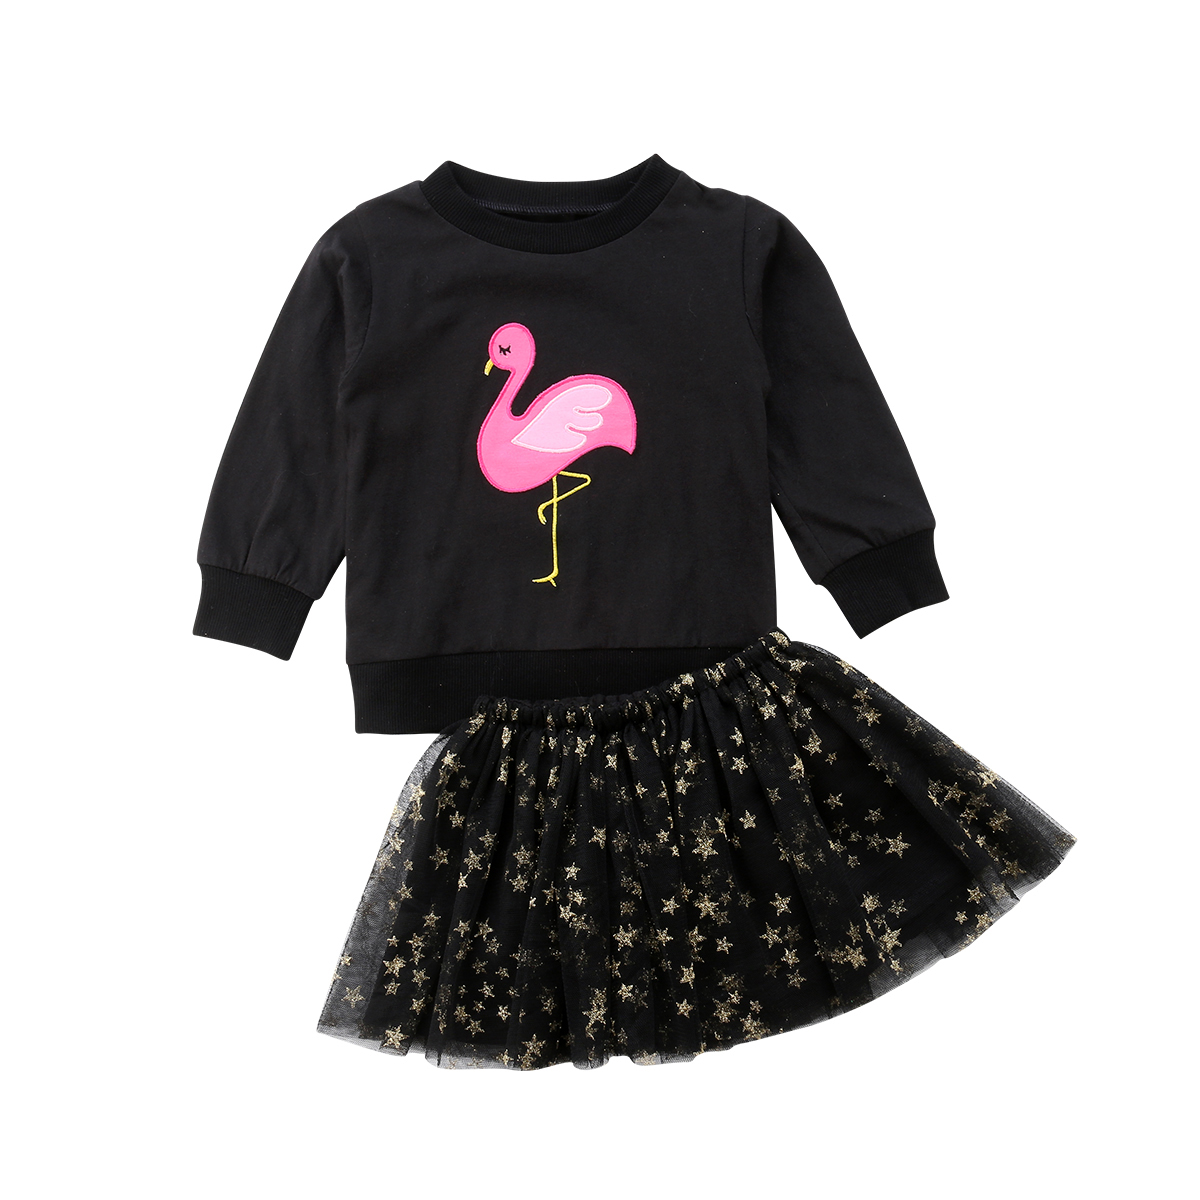 Little Girls Flamingo Clothes Outfits Baby Kids Girl Long Sleeve Tops Sweatshirt Tutu Skirts Outfits Clothing Set 2019